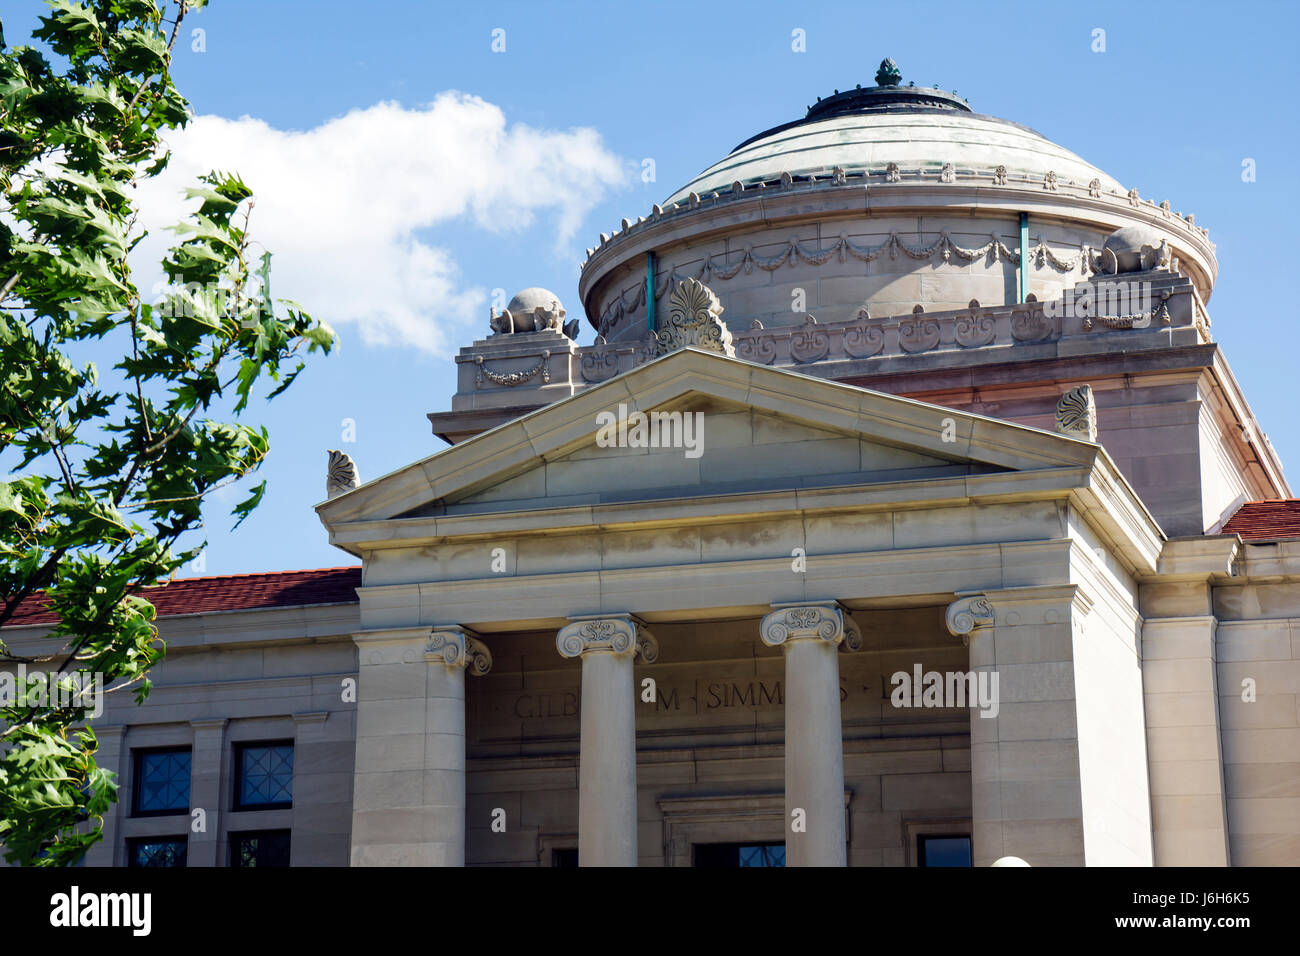 Wisconsin Kenosha Library Park Simmons Library Building historic district Neoclassical Revival architecture 1920s - Stock Image